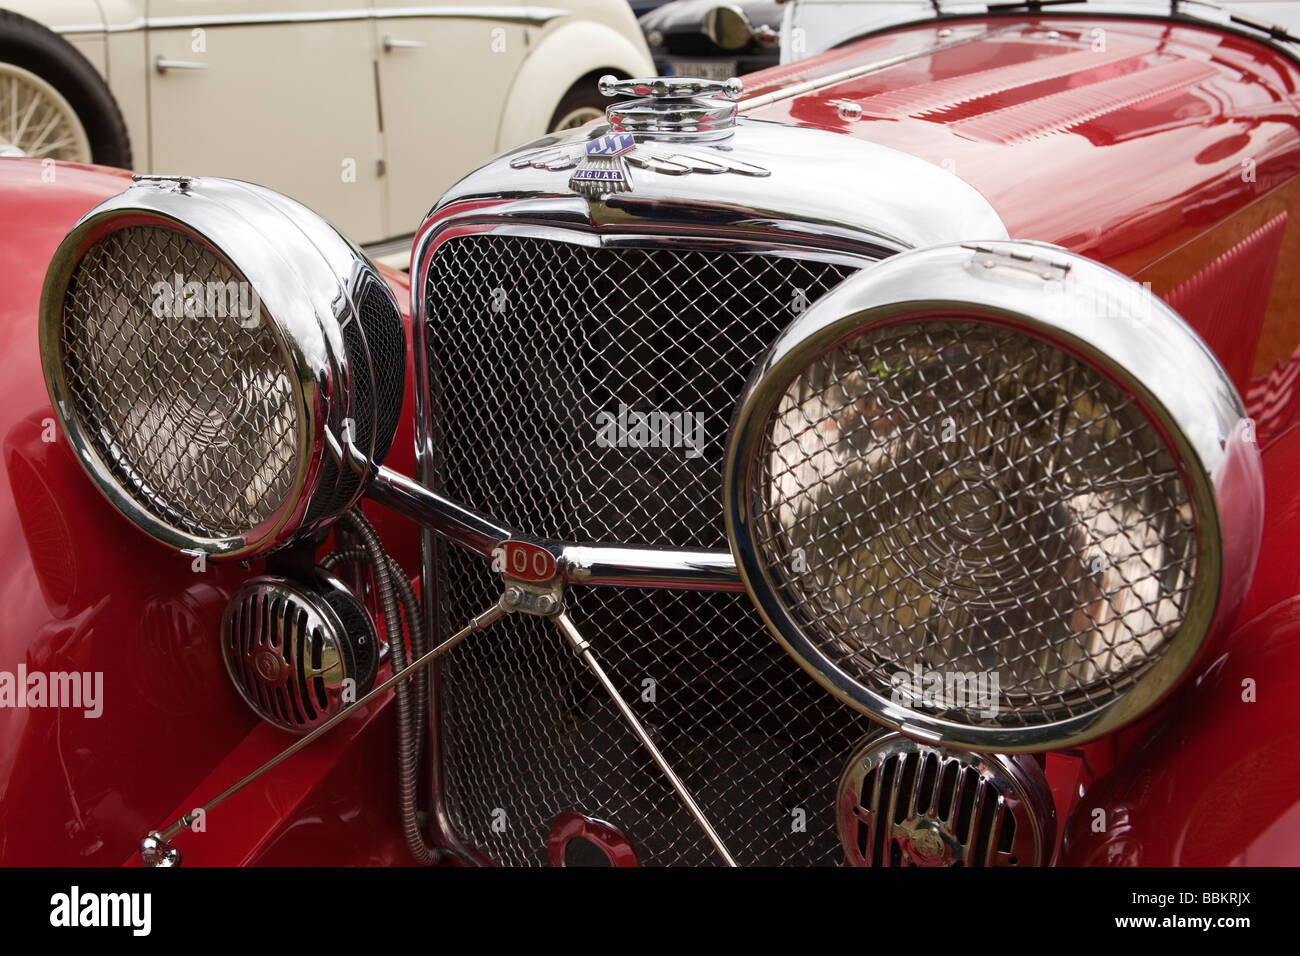 Motoring front of classic old pre war 1937 British made SS100 car - Stock Image